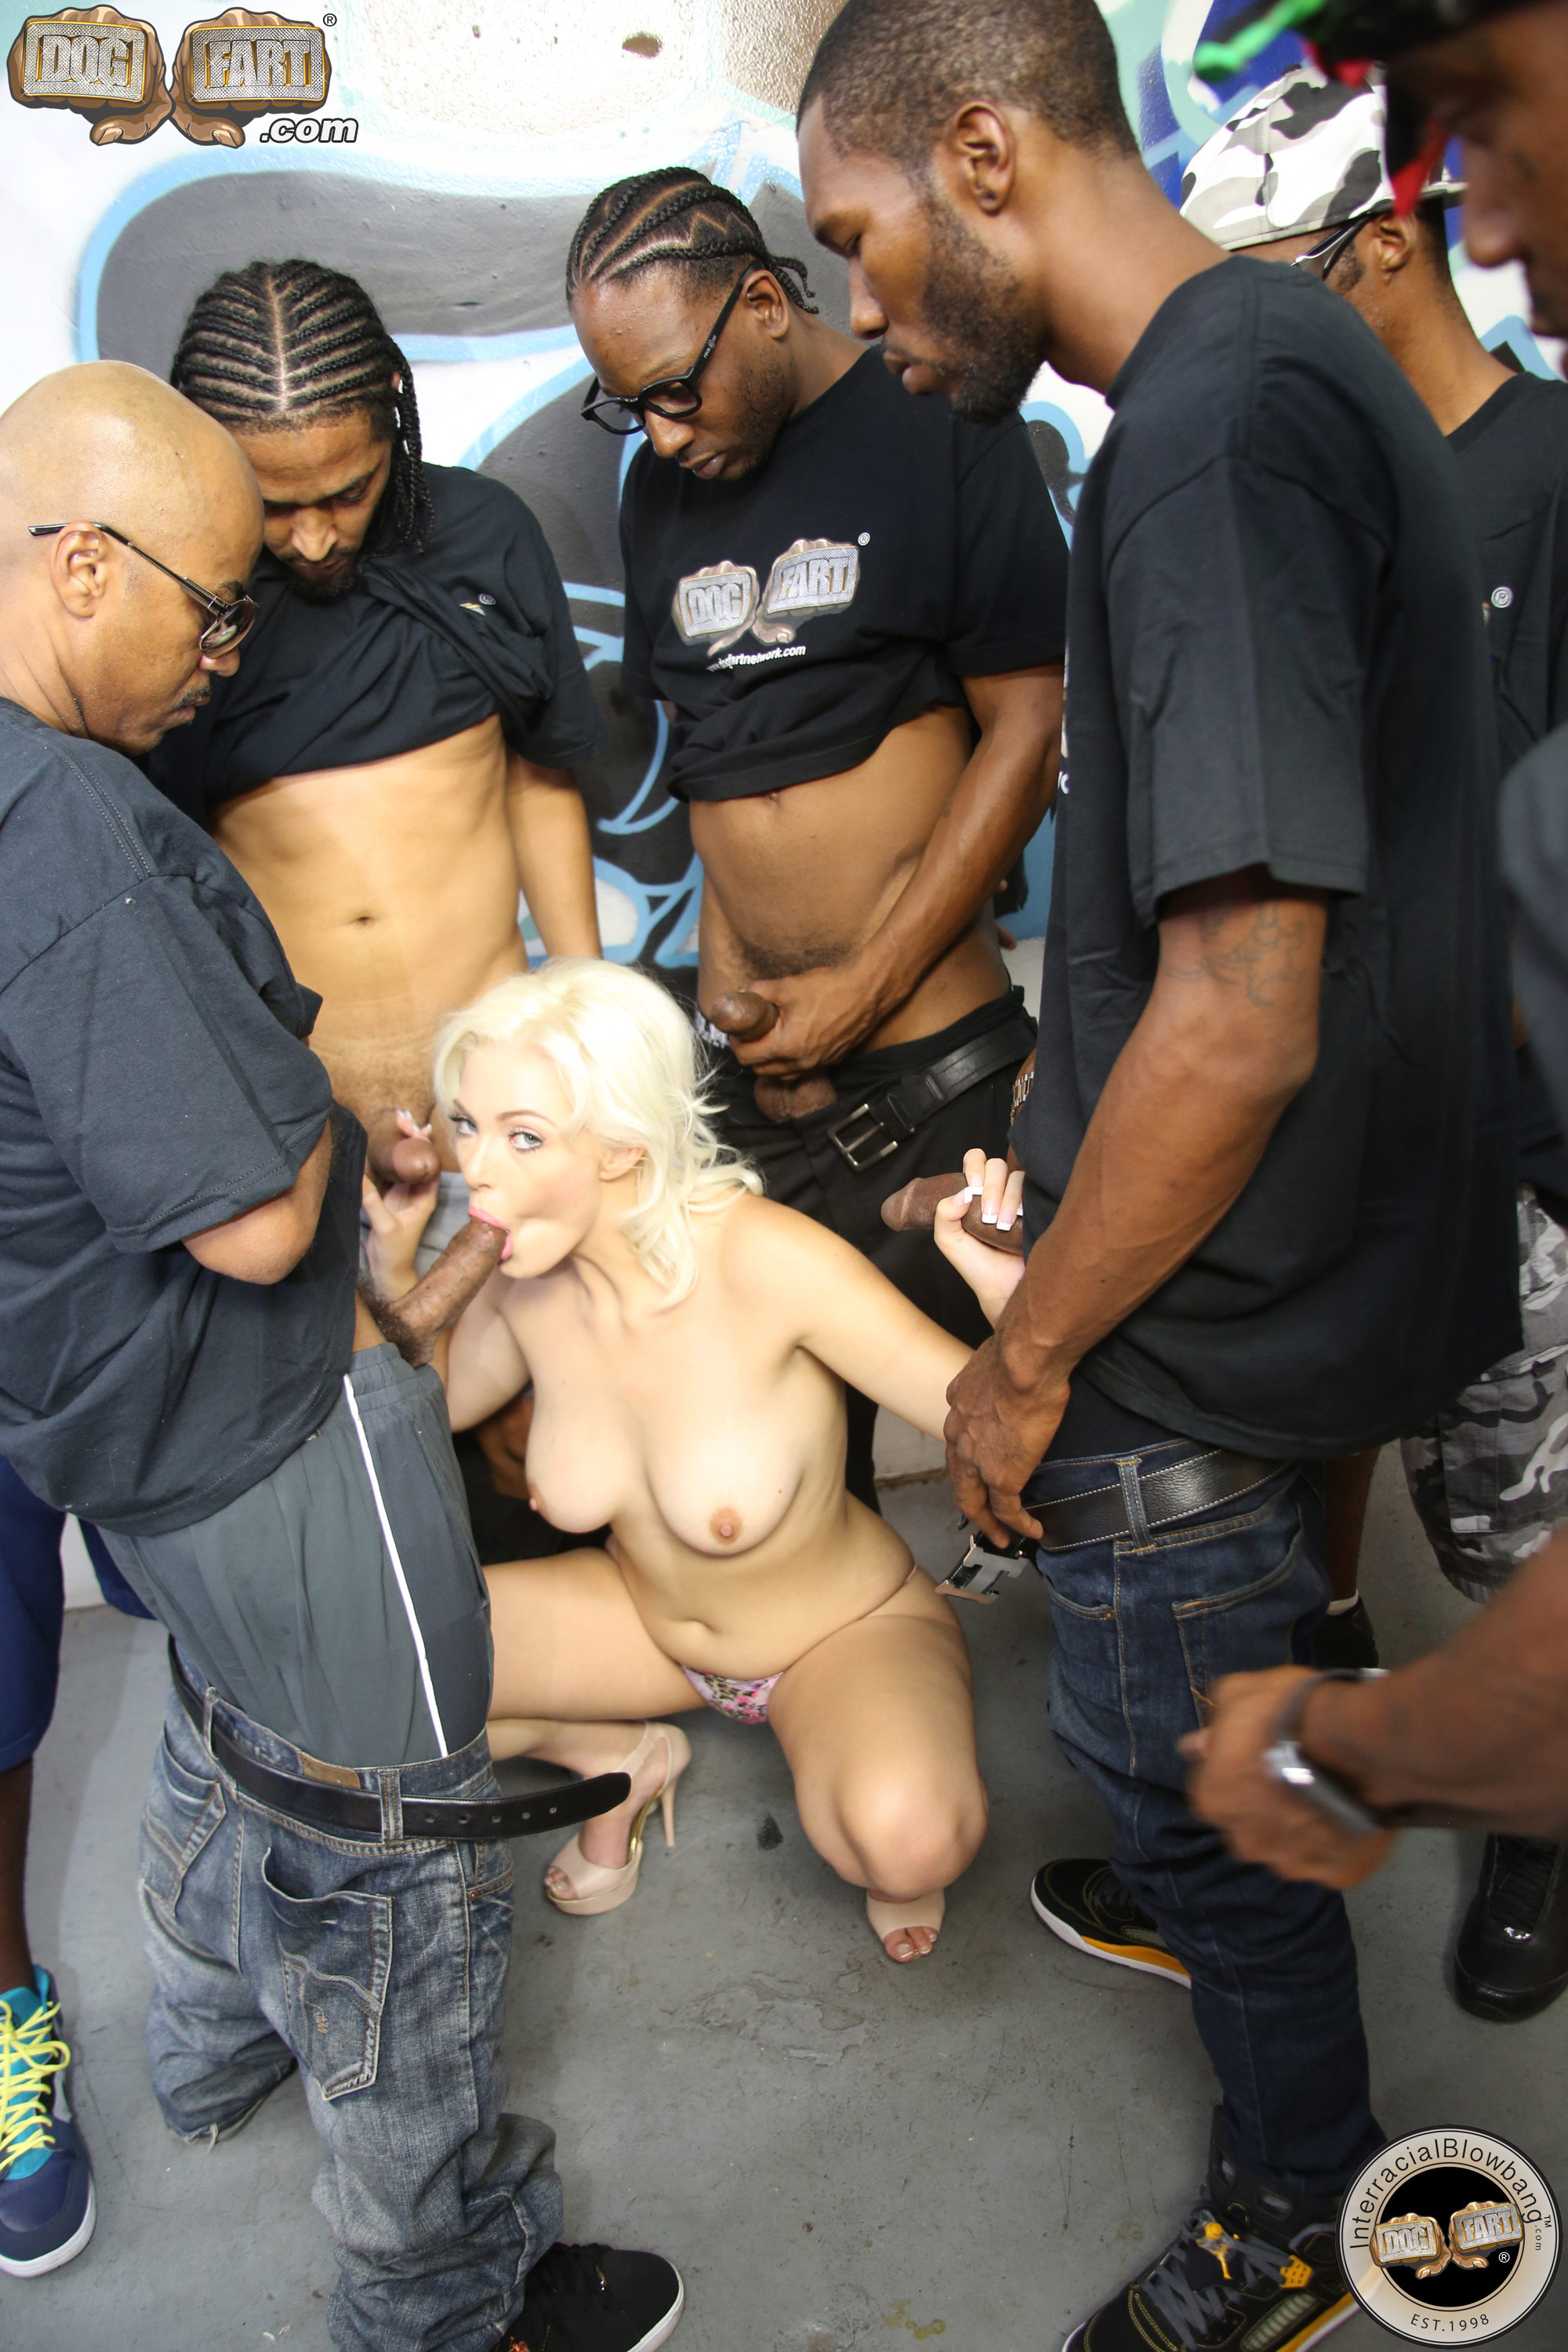 Austin gags on black cock - 1 part 7